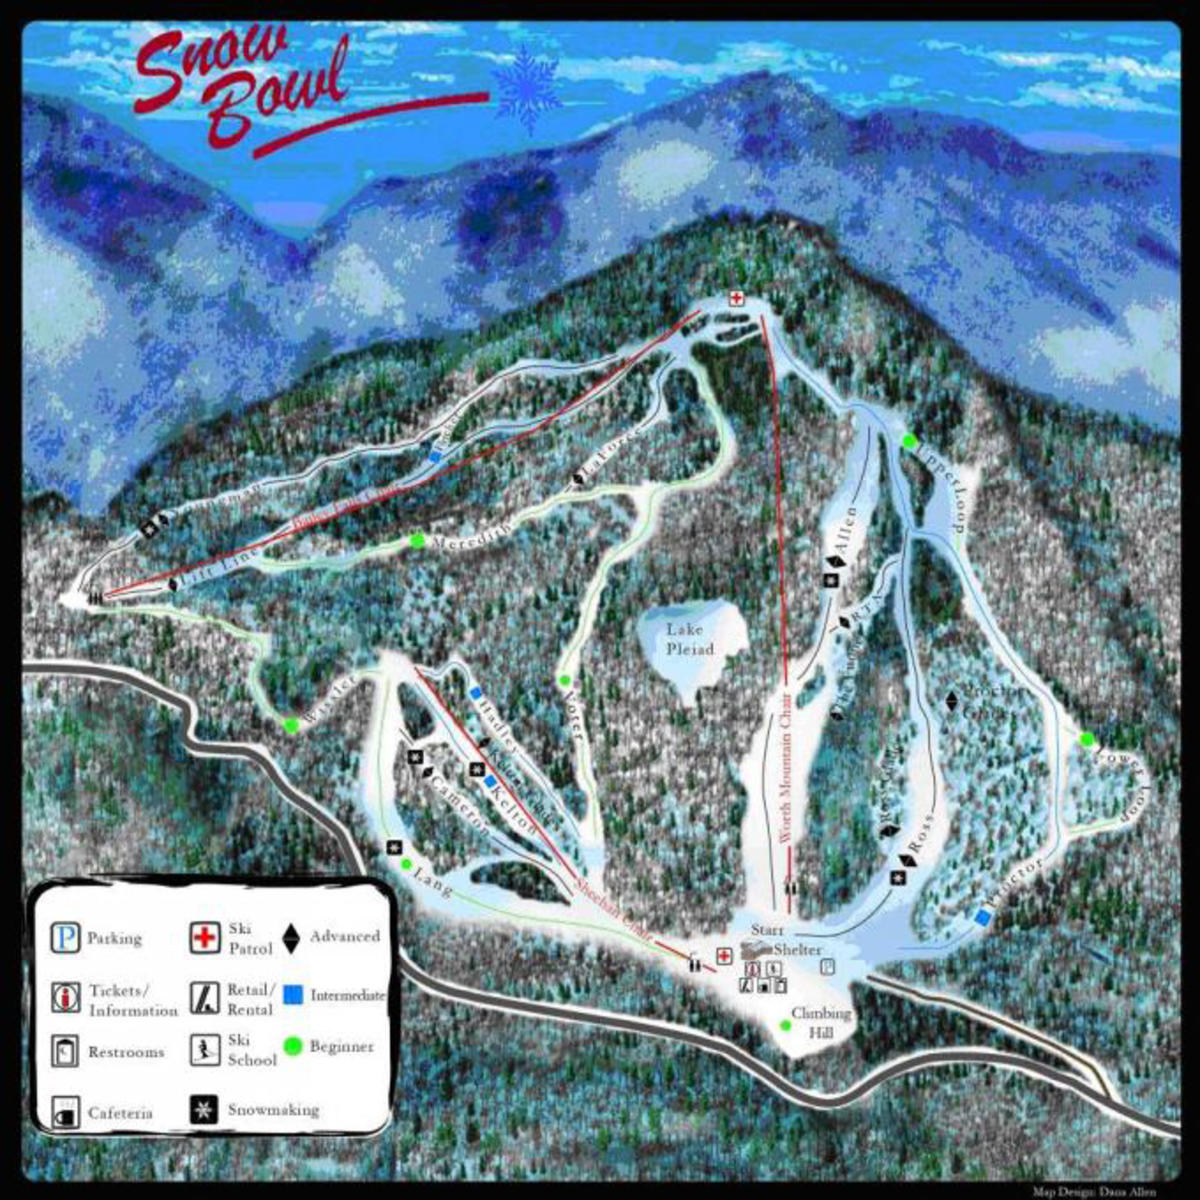 Middlebury College Snow Bowl Trail Map SkiCentralcom - Vermont colleges map